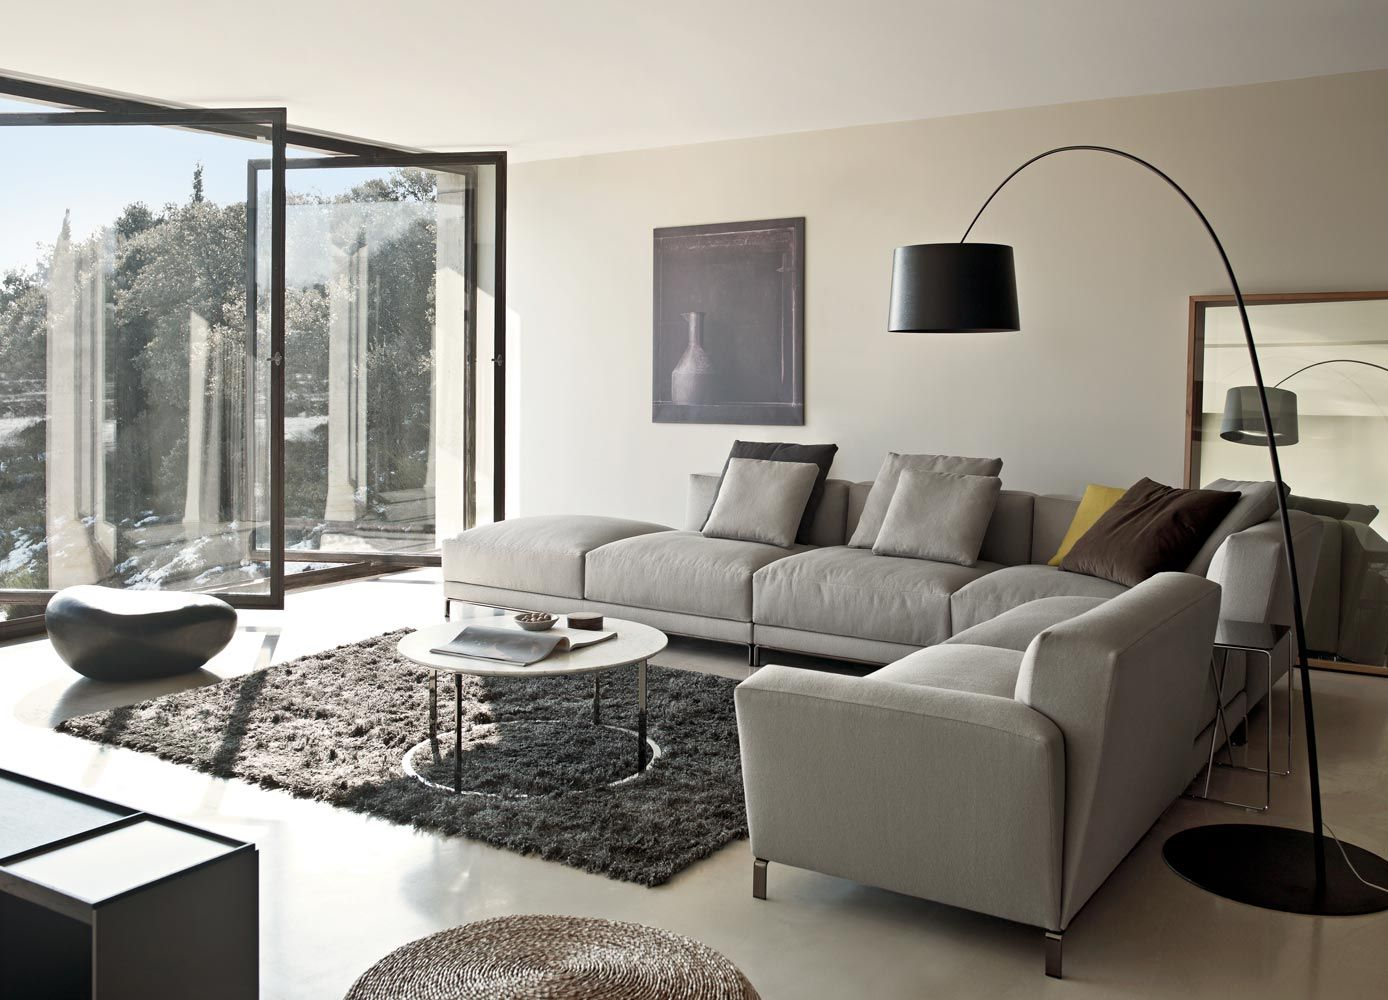 Best Images About BB ITALIA On Pinterest Armchairs Design - Living room sofa designs